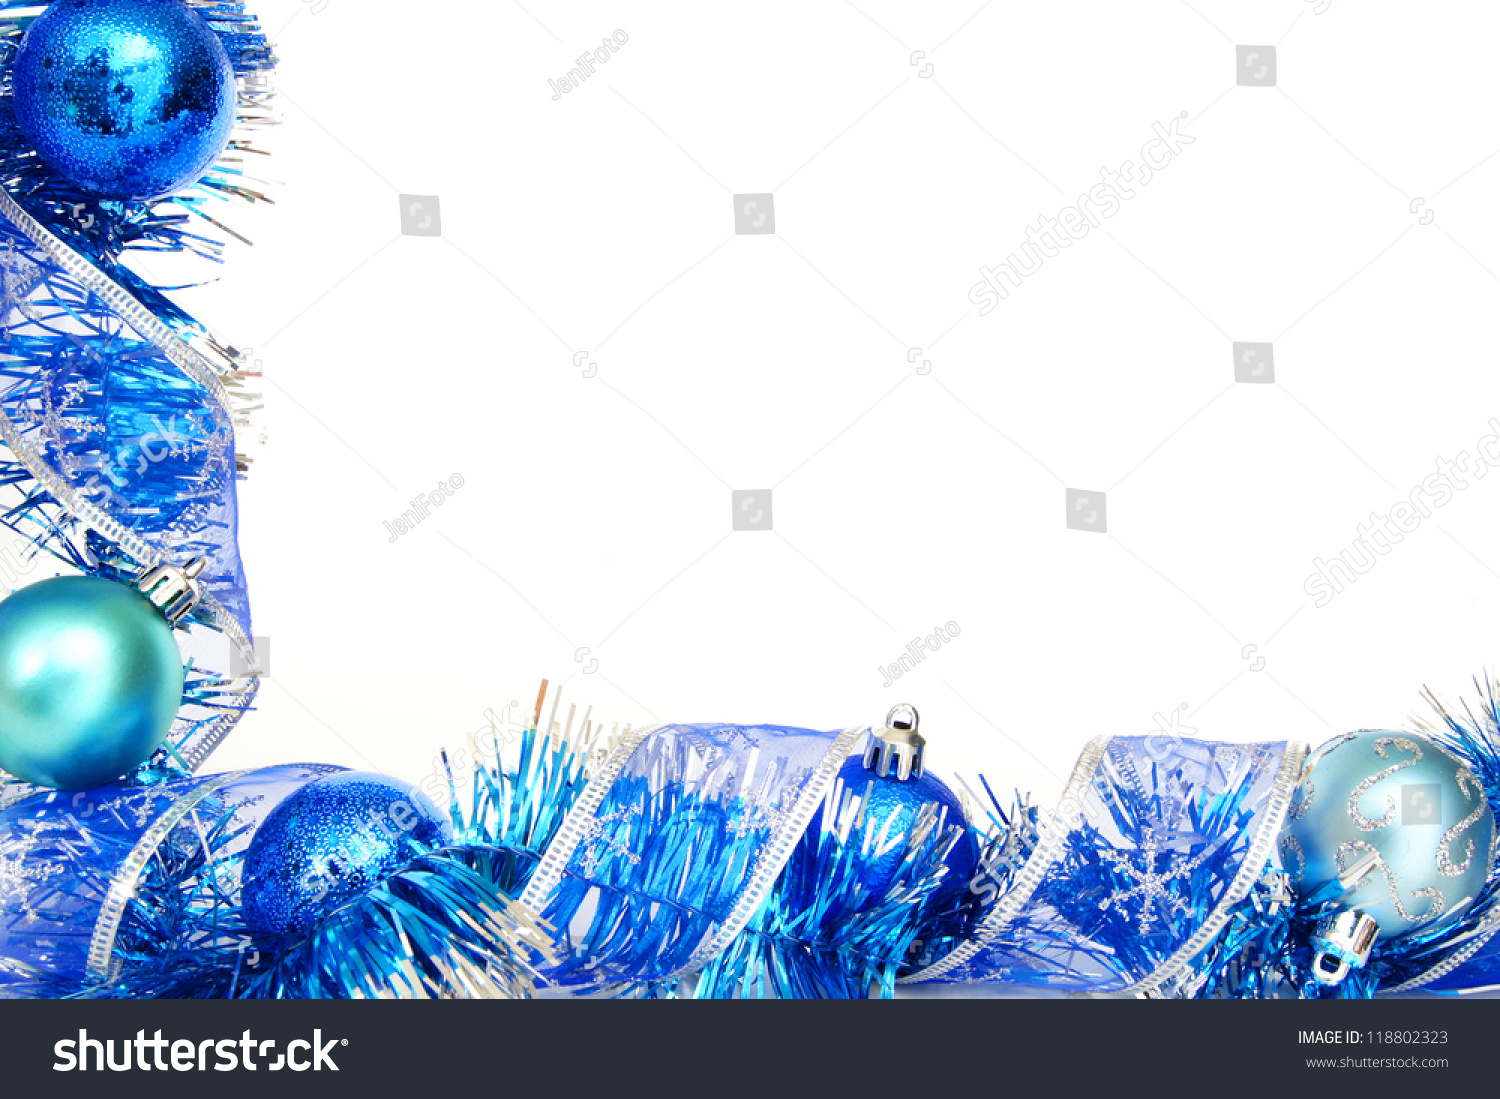 Blue Christmas Border With Baubles Garland And Shiny Ribbon Over White